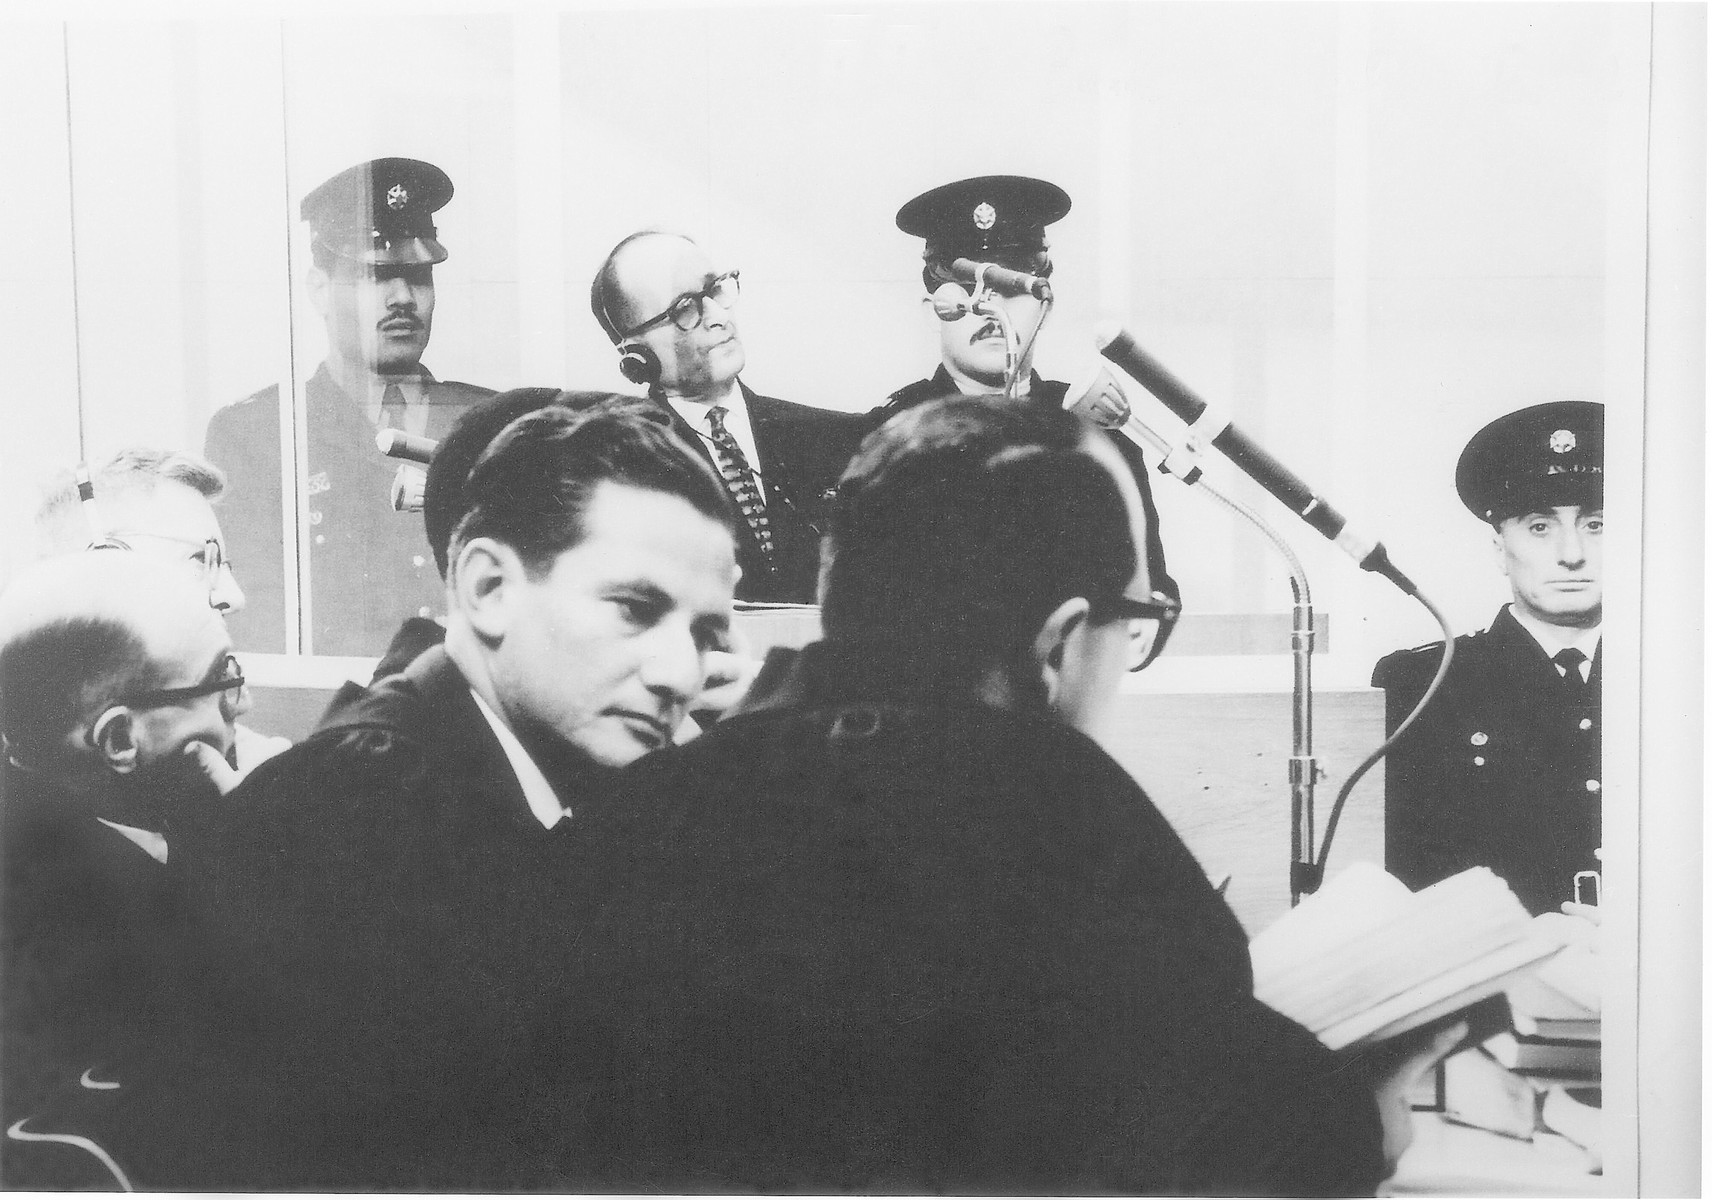 Adolf Eichmann listens to the proceedings through a glass booth during his trial in Jerusalem.